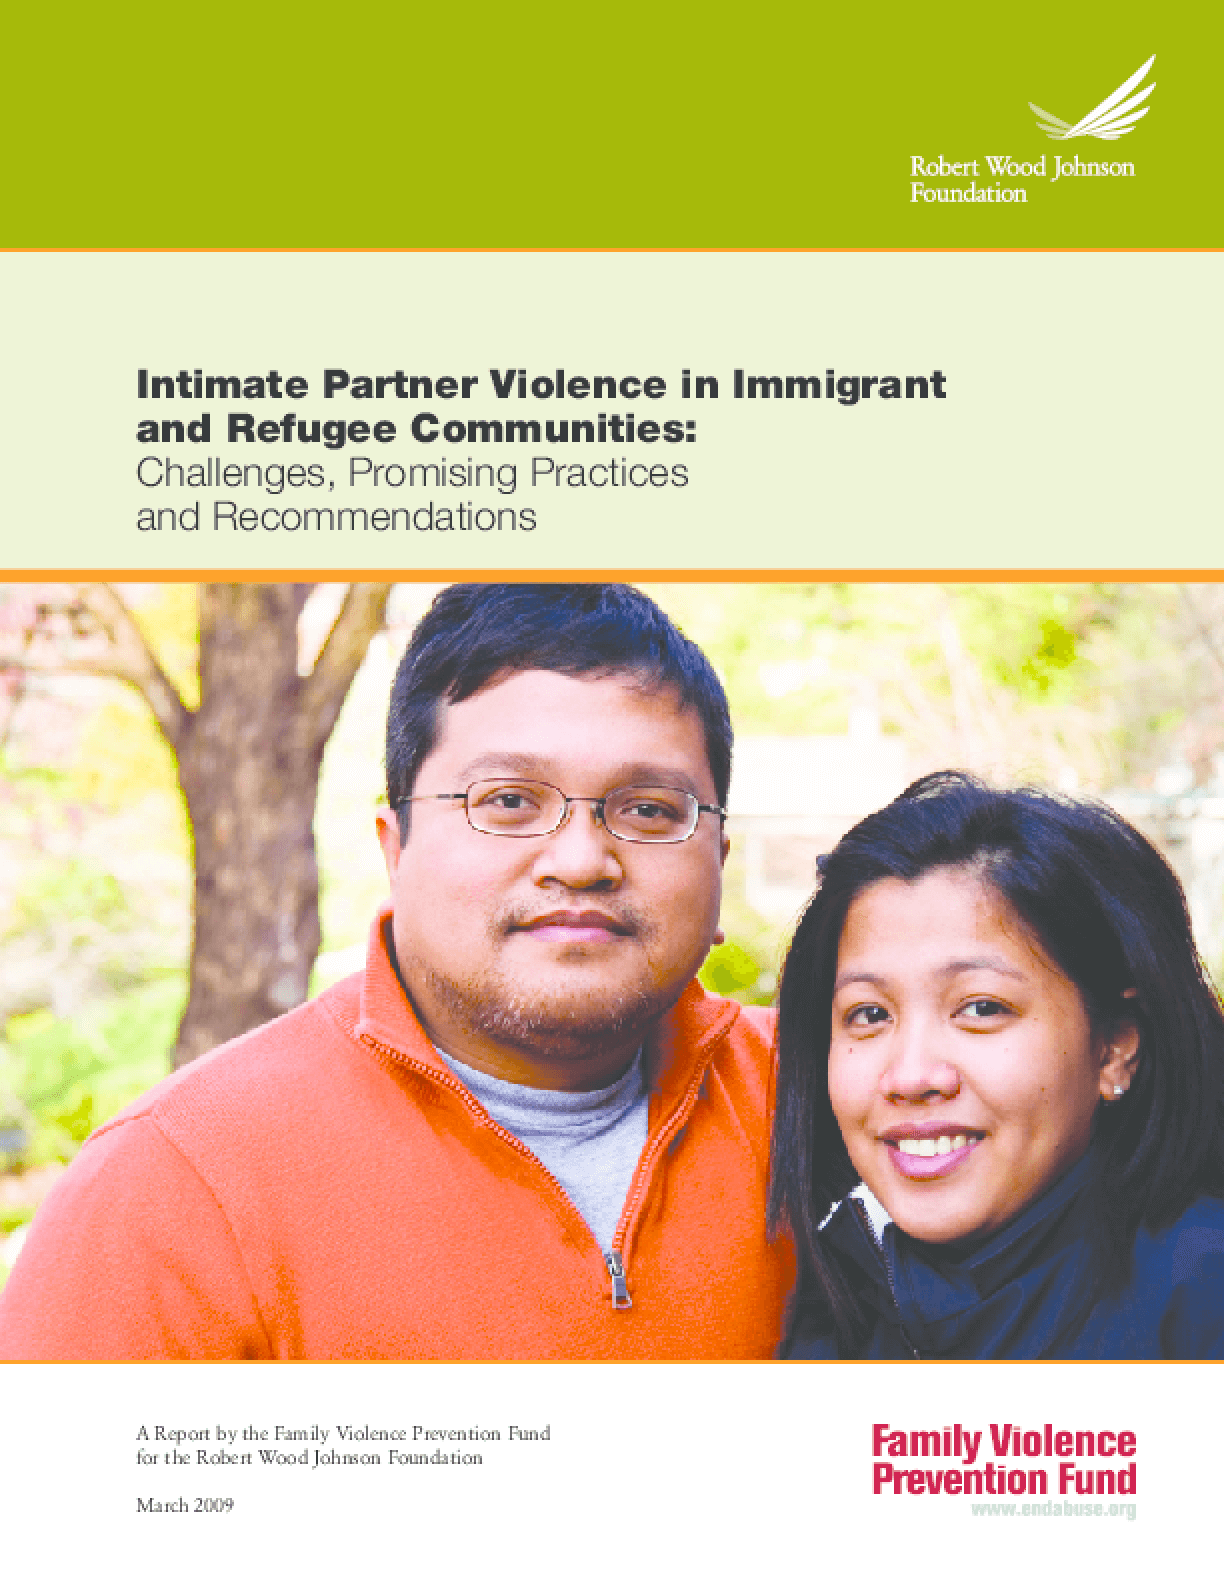 Intimate Partner Violence in Immigrant and Refugee Communities: Challenges, Promising Practices and Recommendations